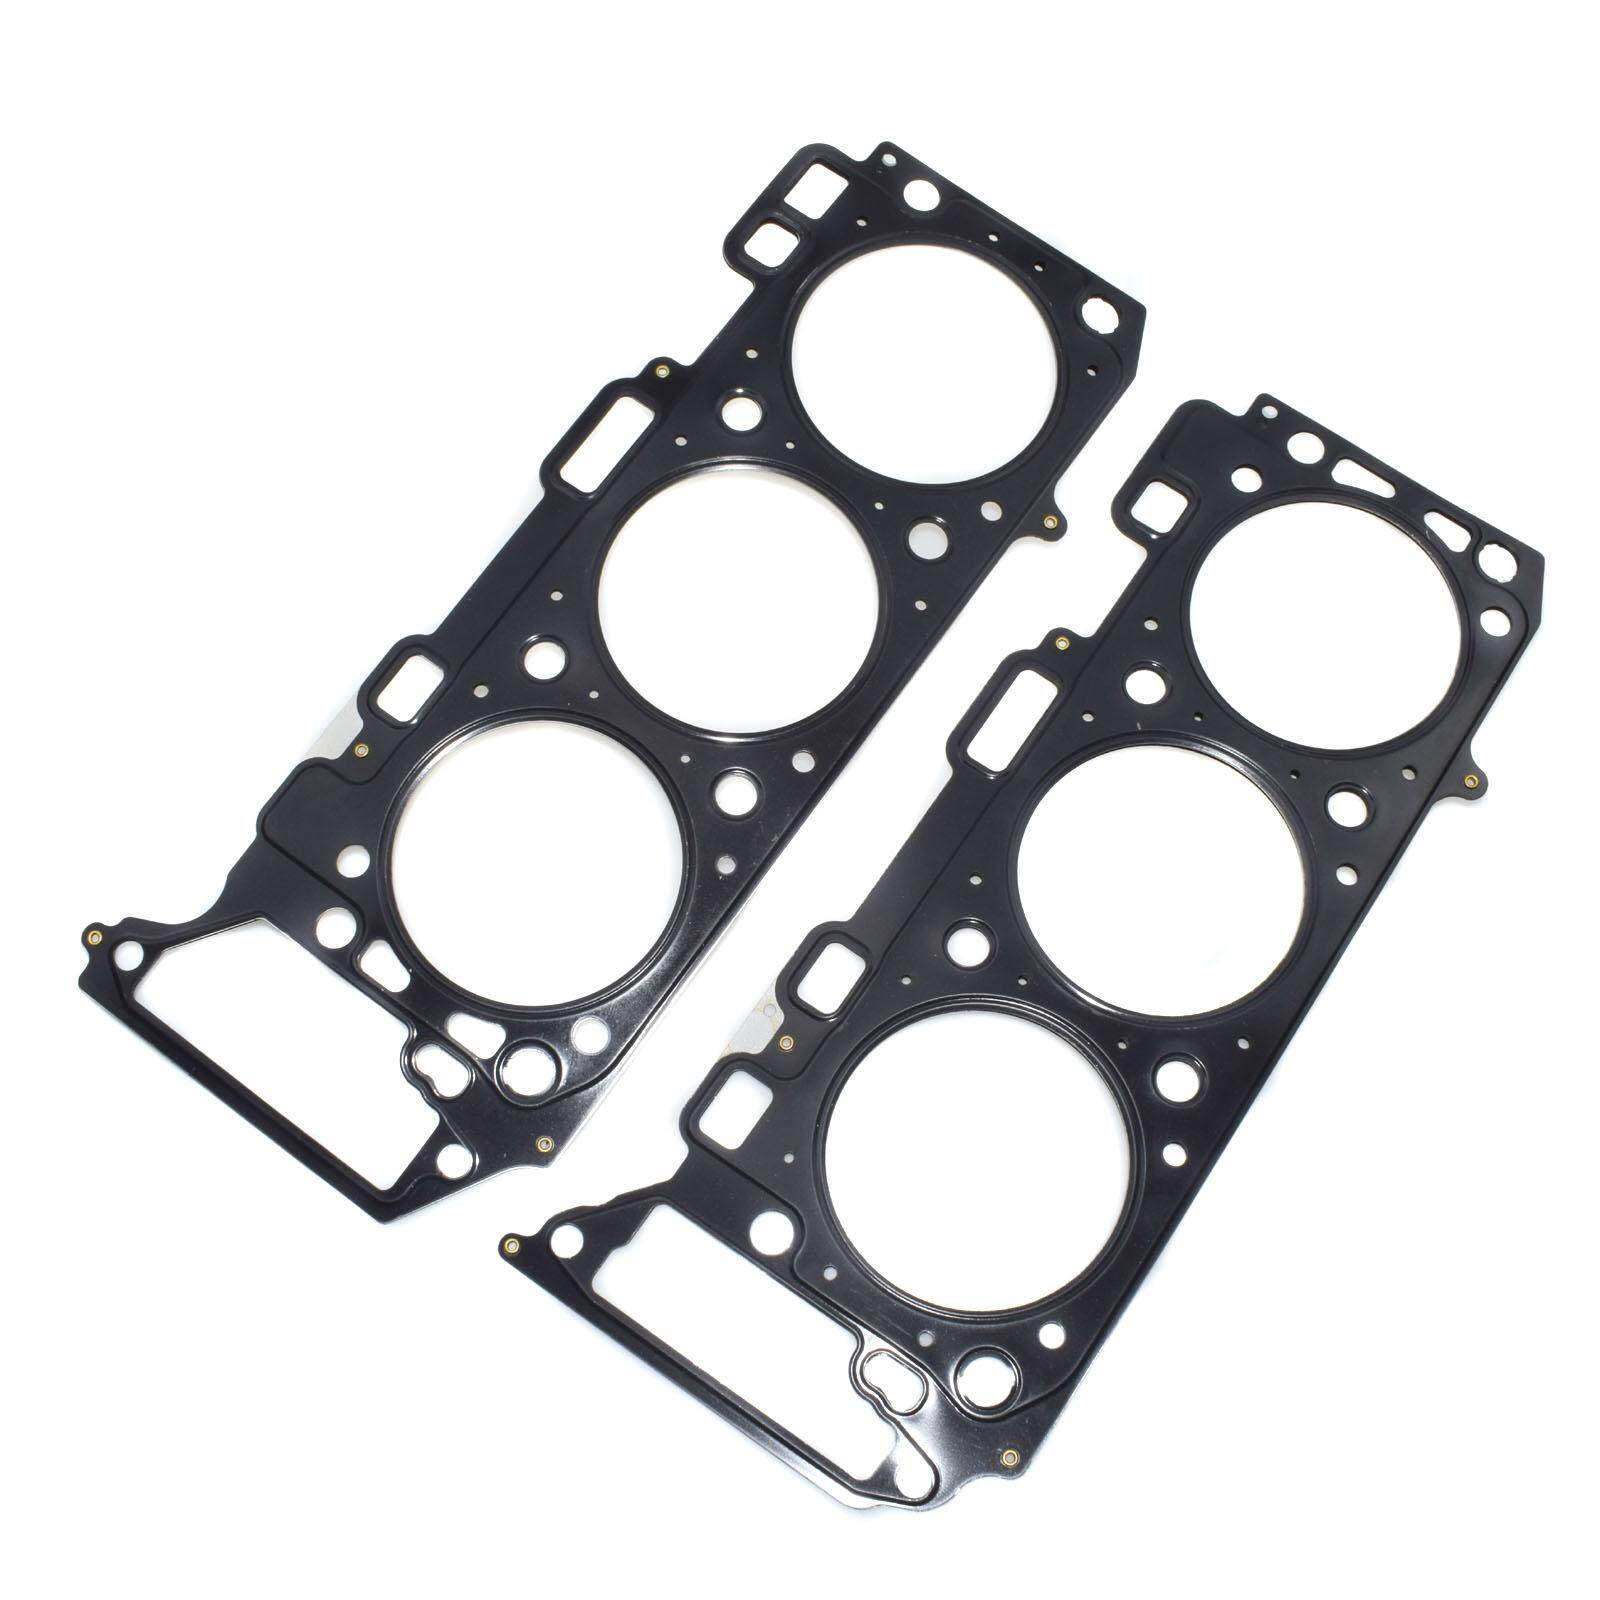 hight resolution of engine cylinder head gasket 26300pt 26301pt for ford explorer ranger lander rover lr3 mercury mazda